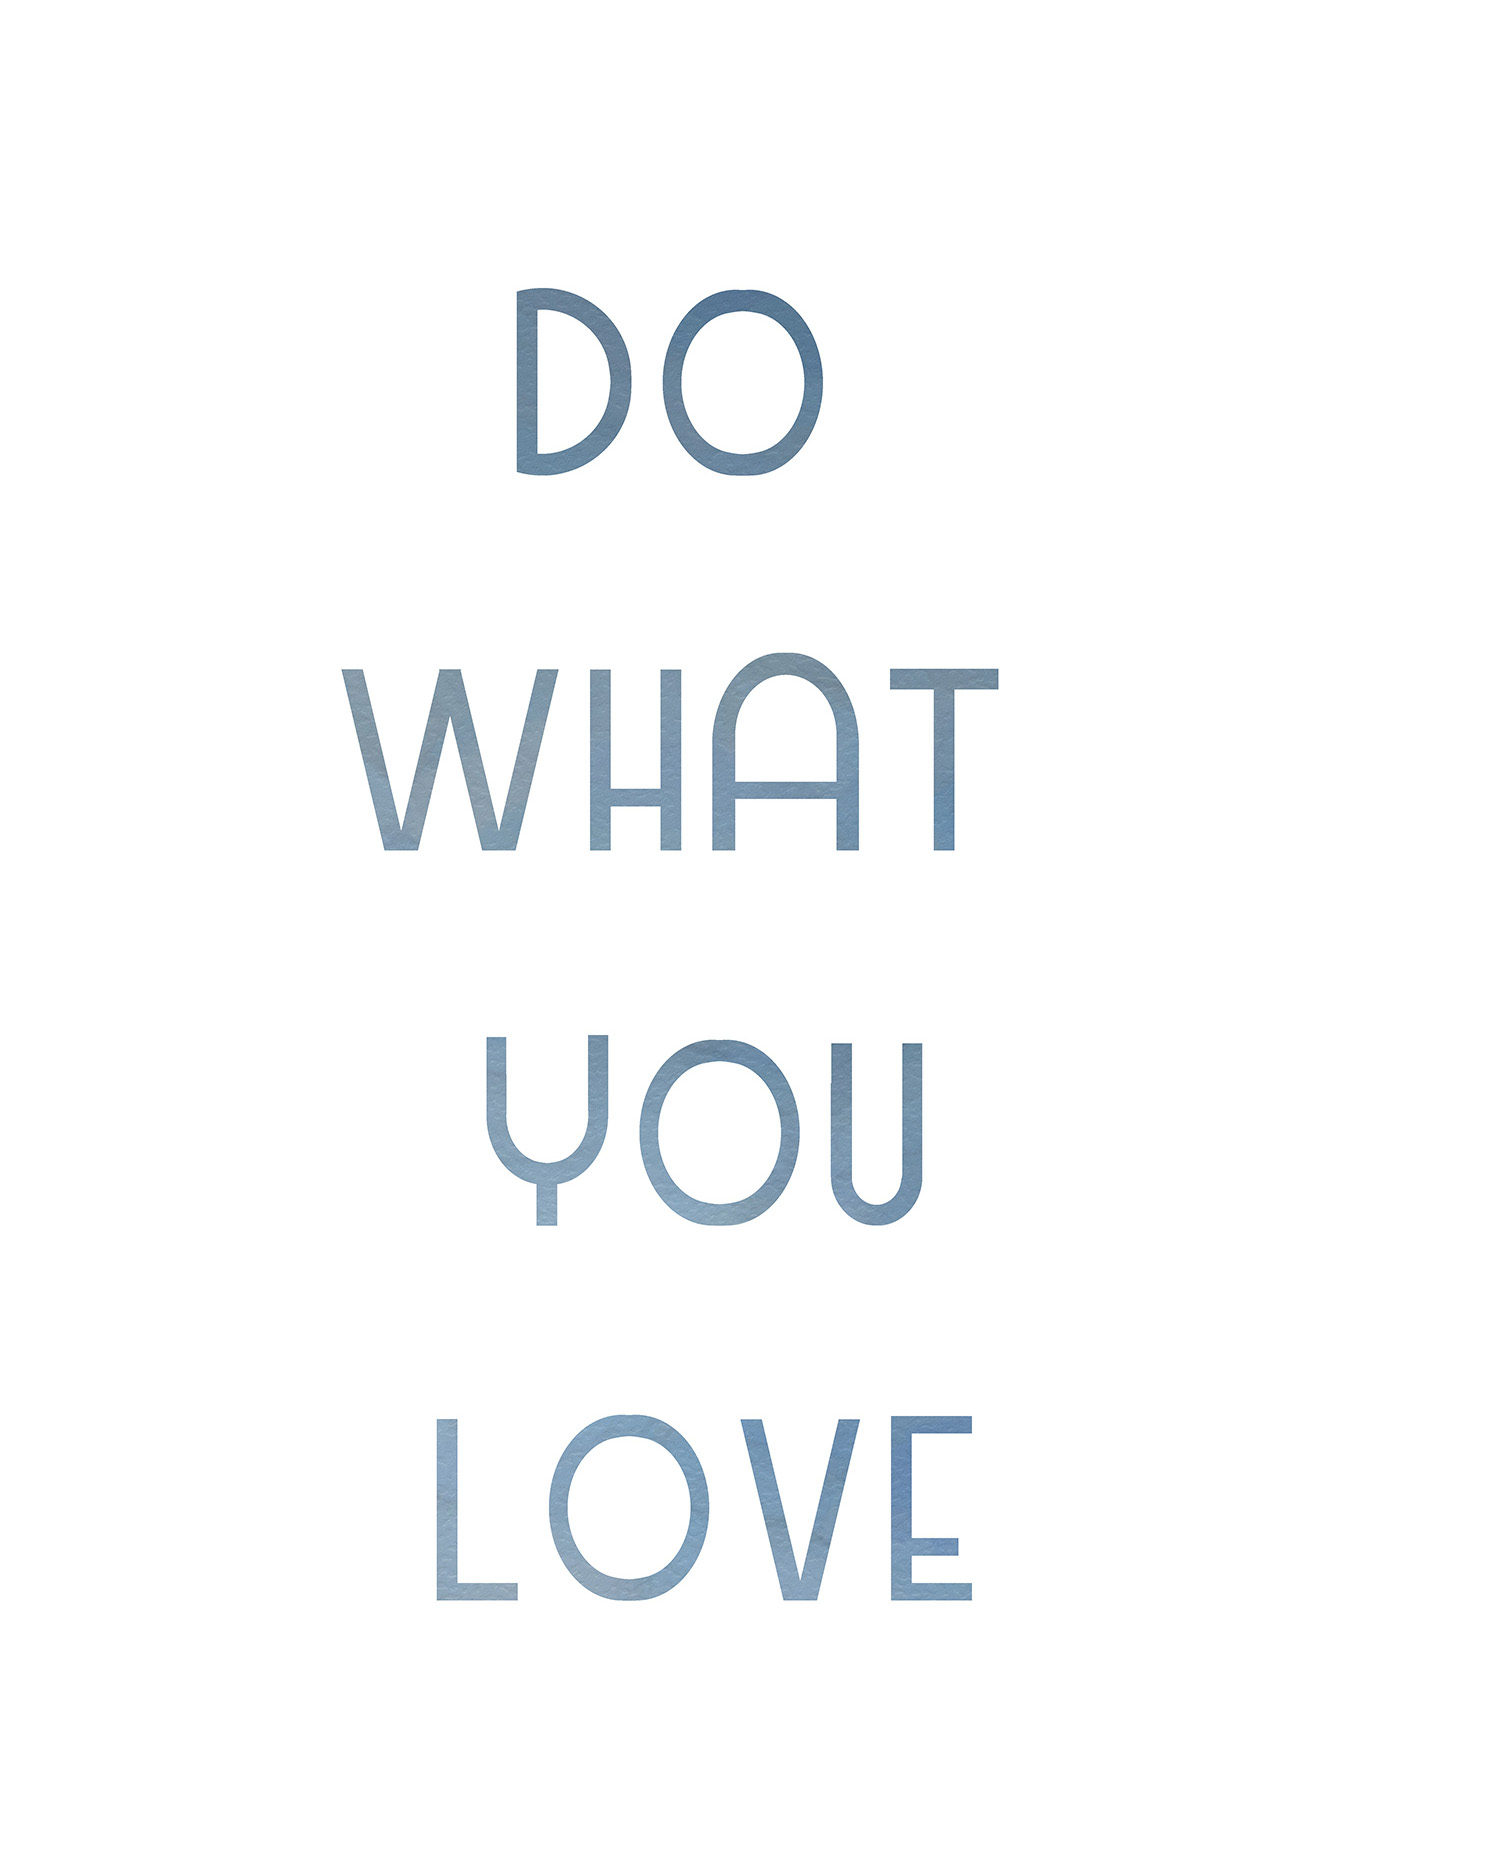 Do-What-You-Love.jpg